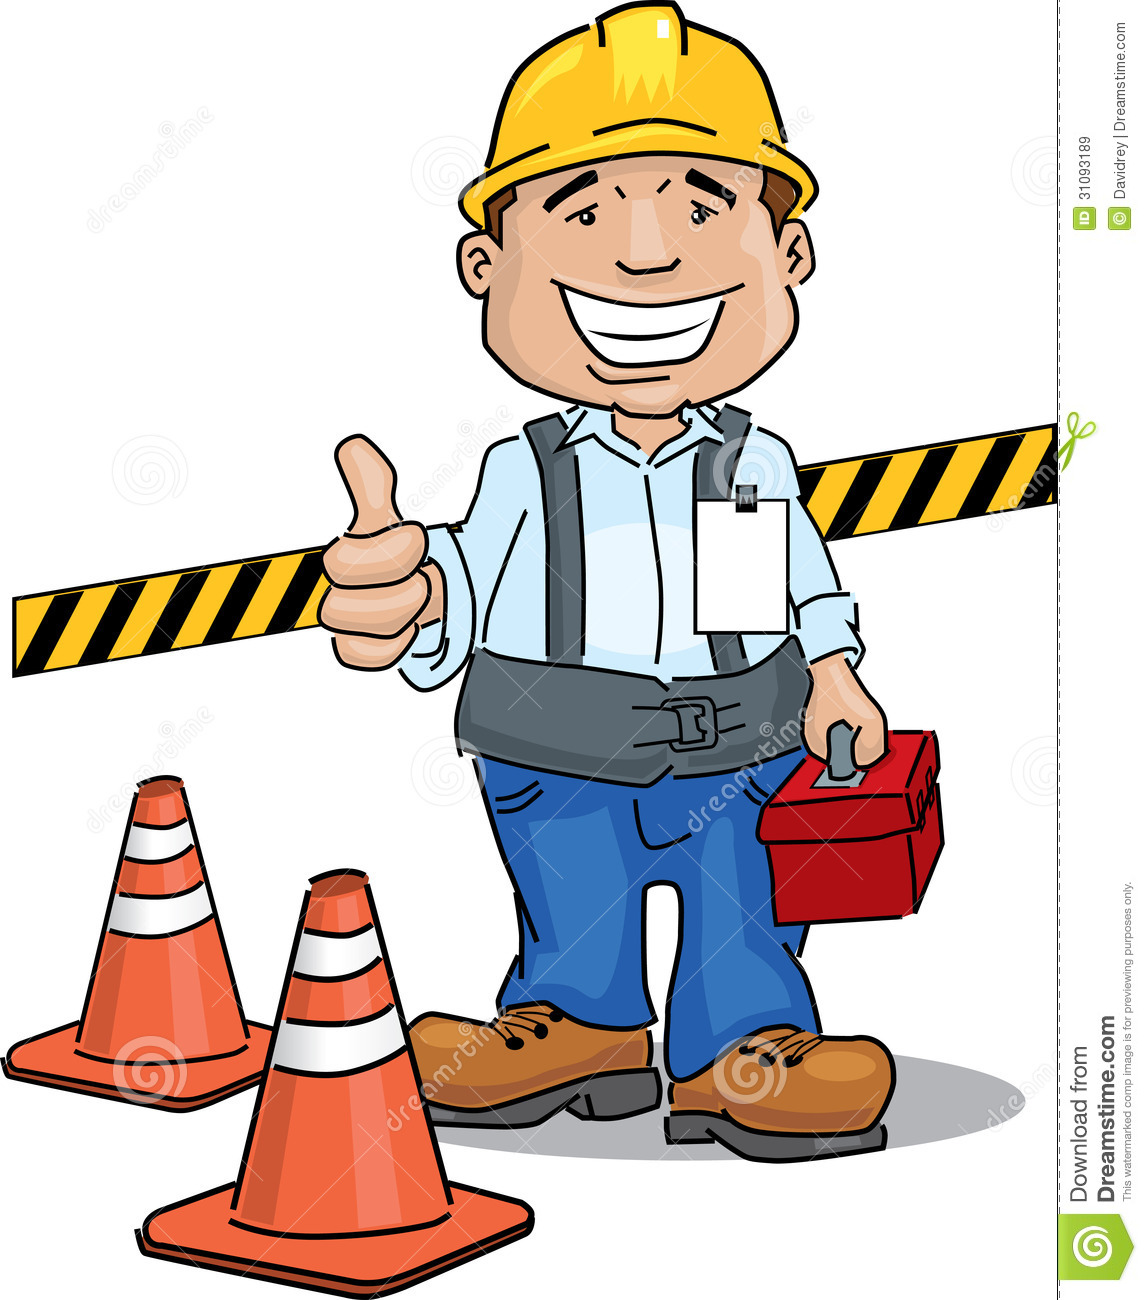 Cartoon Construction Worker Clipart | Free download on ...